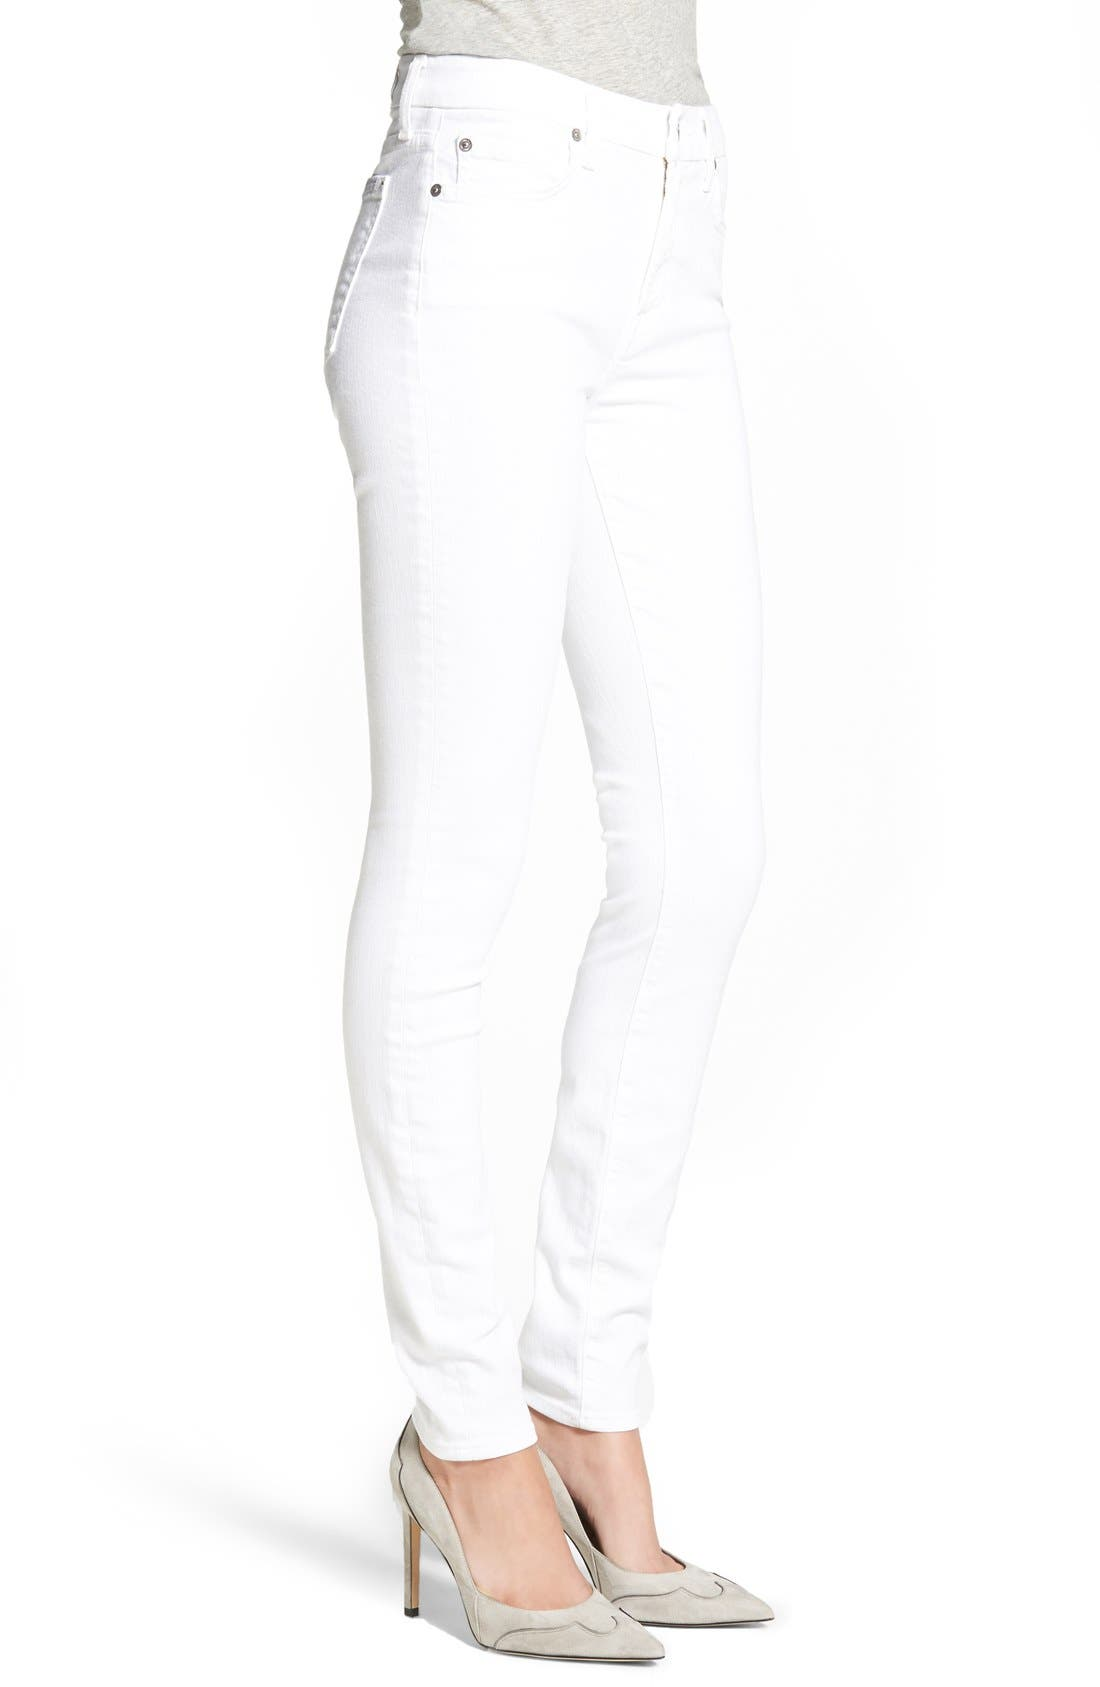 'The Skinny' Skinny Jeans,                             Alternate thumbnail 3, color,                             Clean White